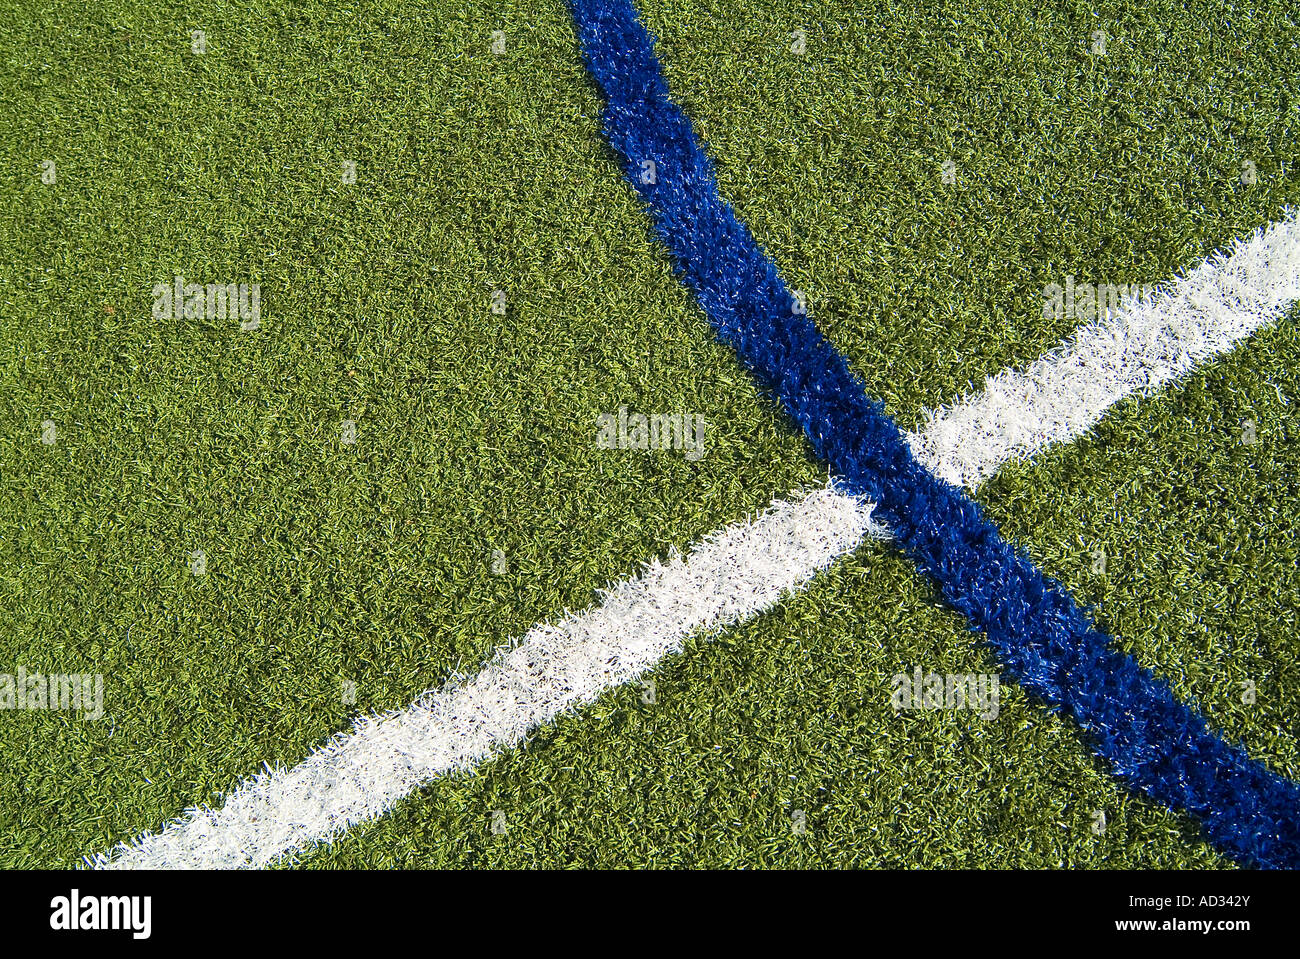 Football Soccer Field Detail Of Lines On Turf Grass, USA - Stock Image